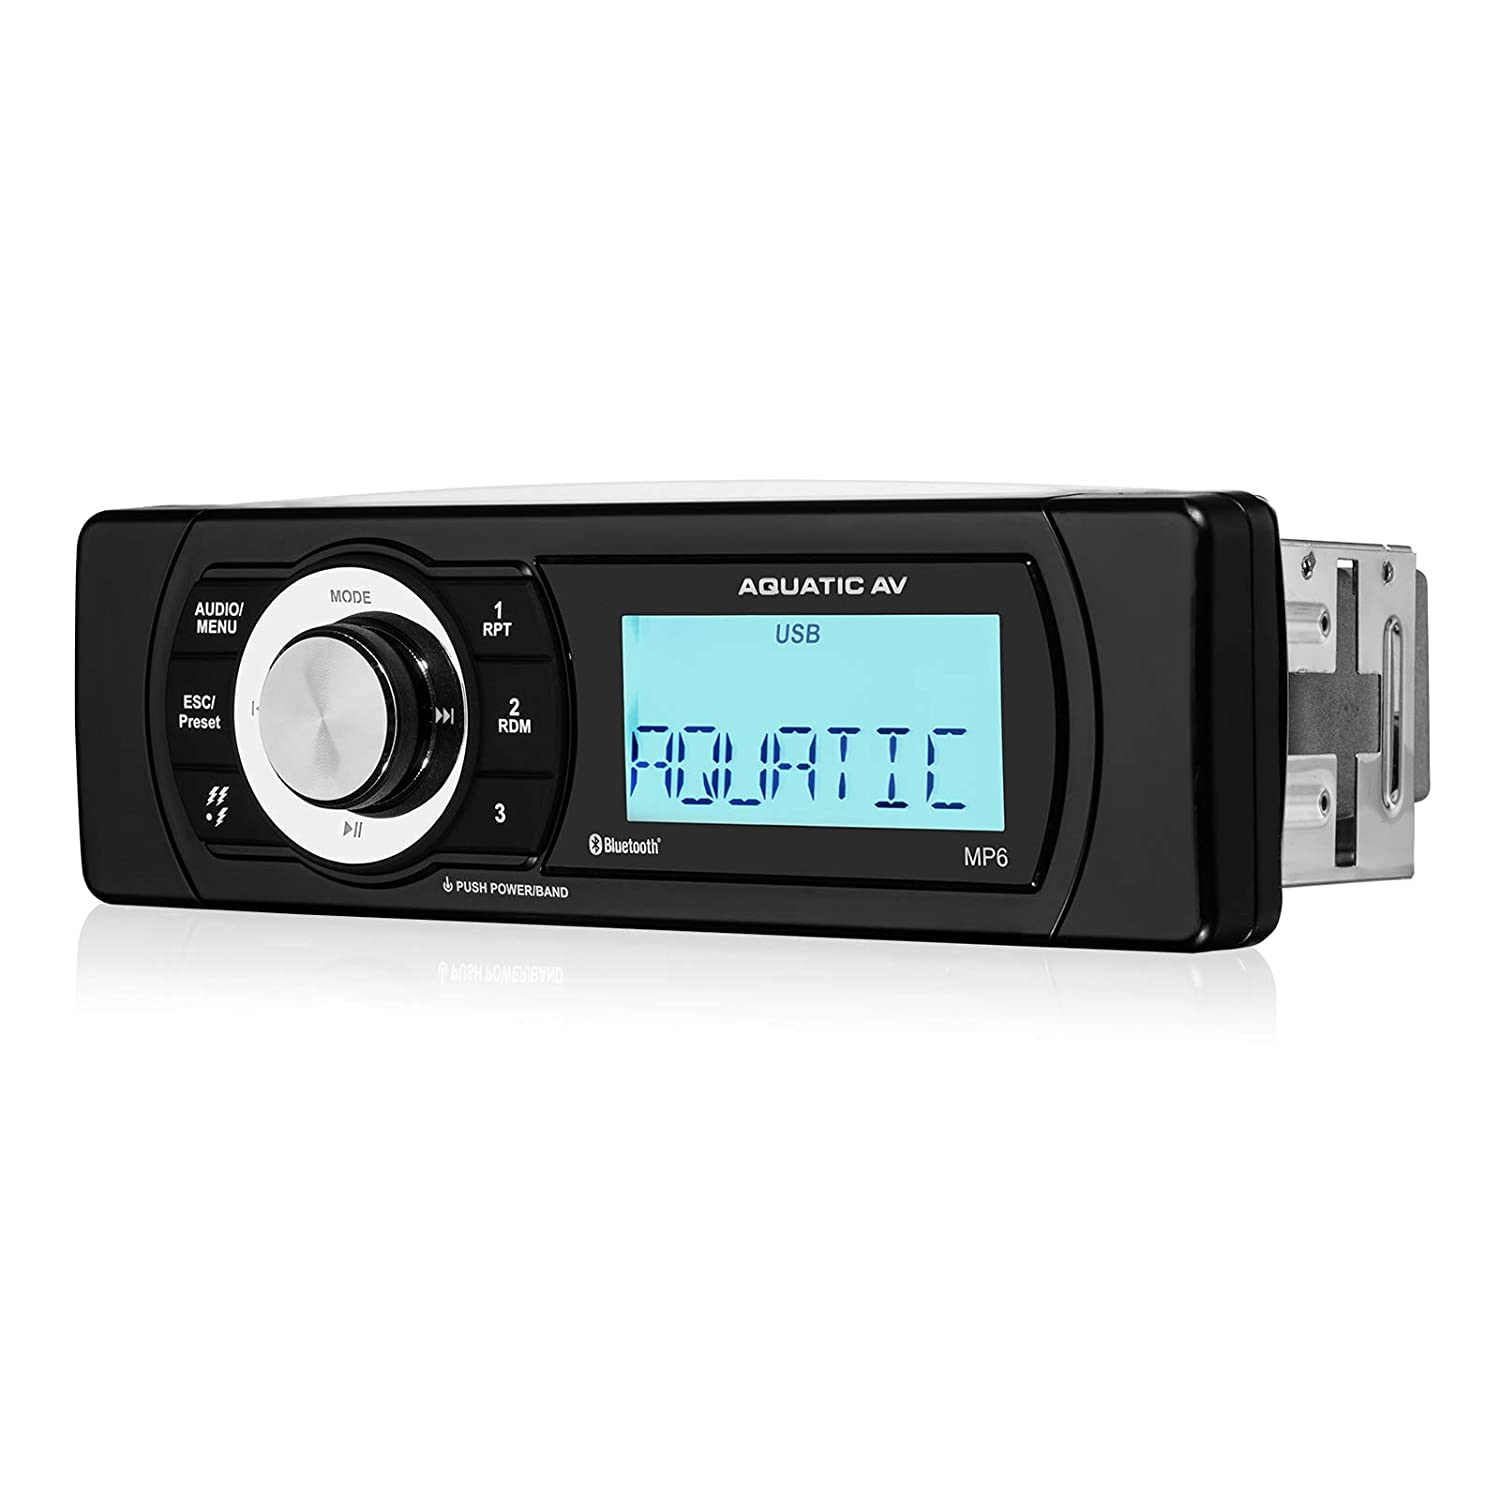 Aquatic AV MP6 Shallow Mount Waterproof Marine Stereo